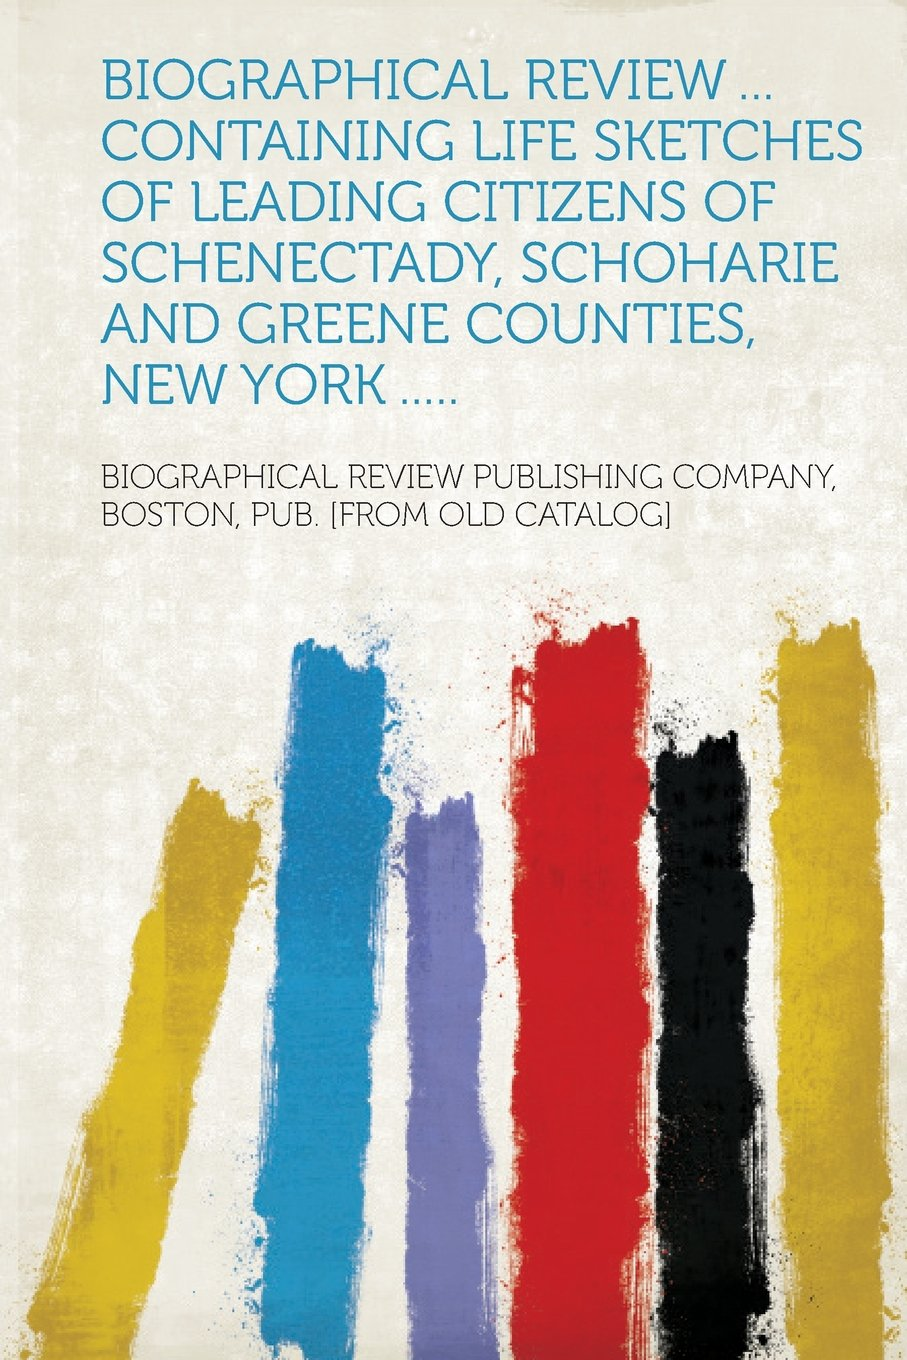 Biographical Review Containing Life Sketches of Leading Citizens of Schenectady, Schoharie and Greene Counties, New York pdf